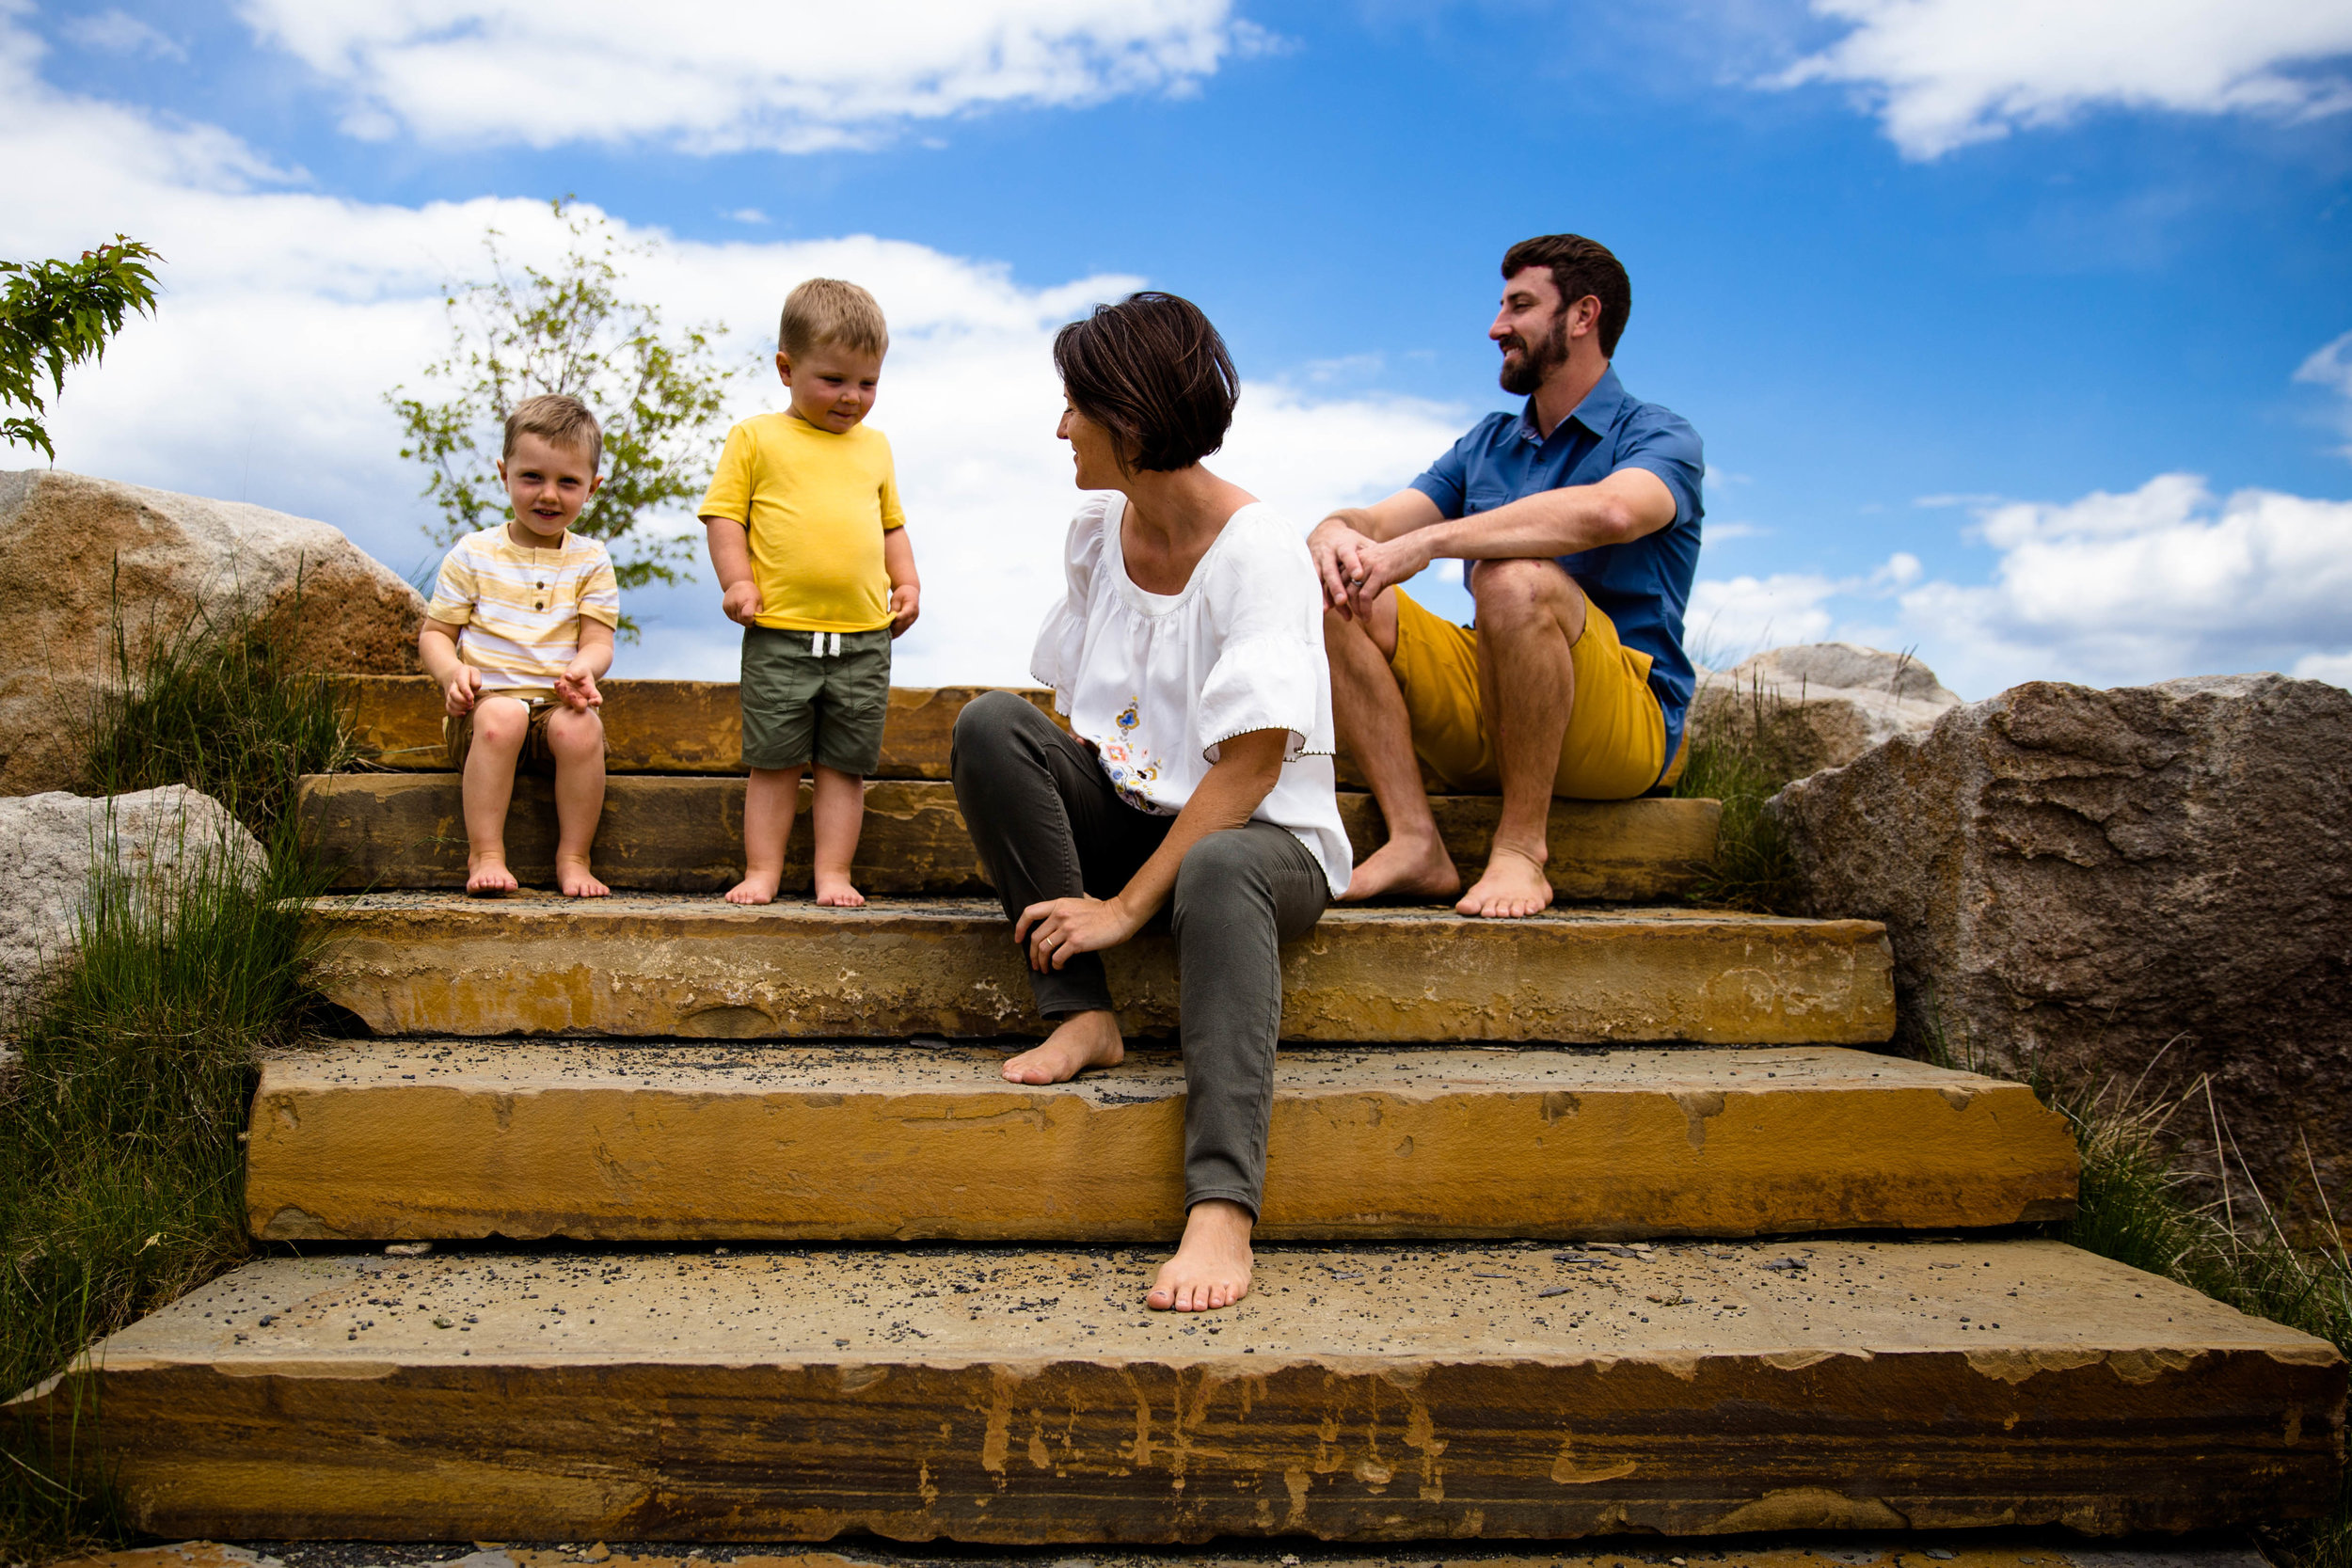 Family of four sitting on large granite steps in Esther Simplot Park/Quinn's Pond in Boise Idaho. Bright blue sky whit puffy white clouds int eh background. boy looking, dad laughing, mom smiling